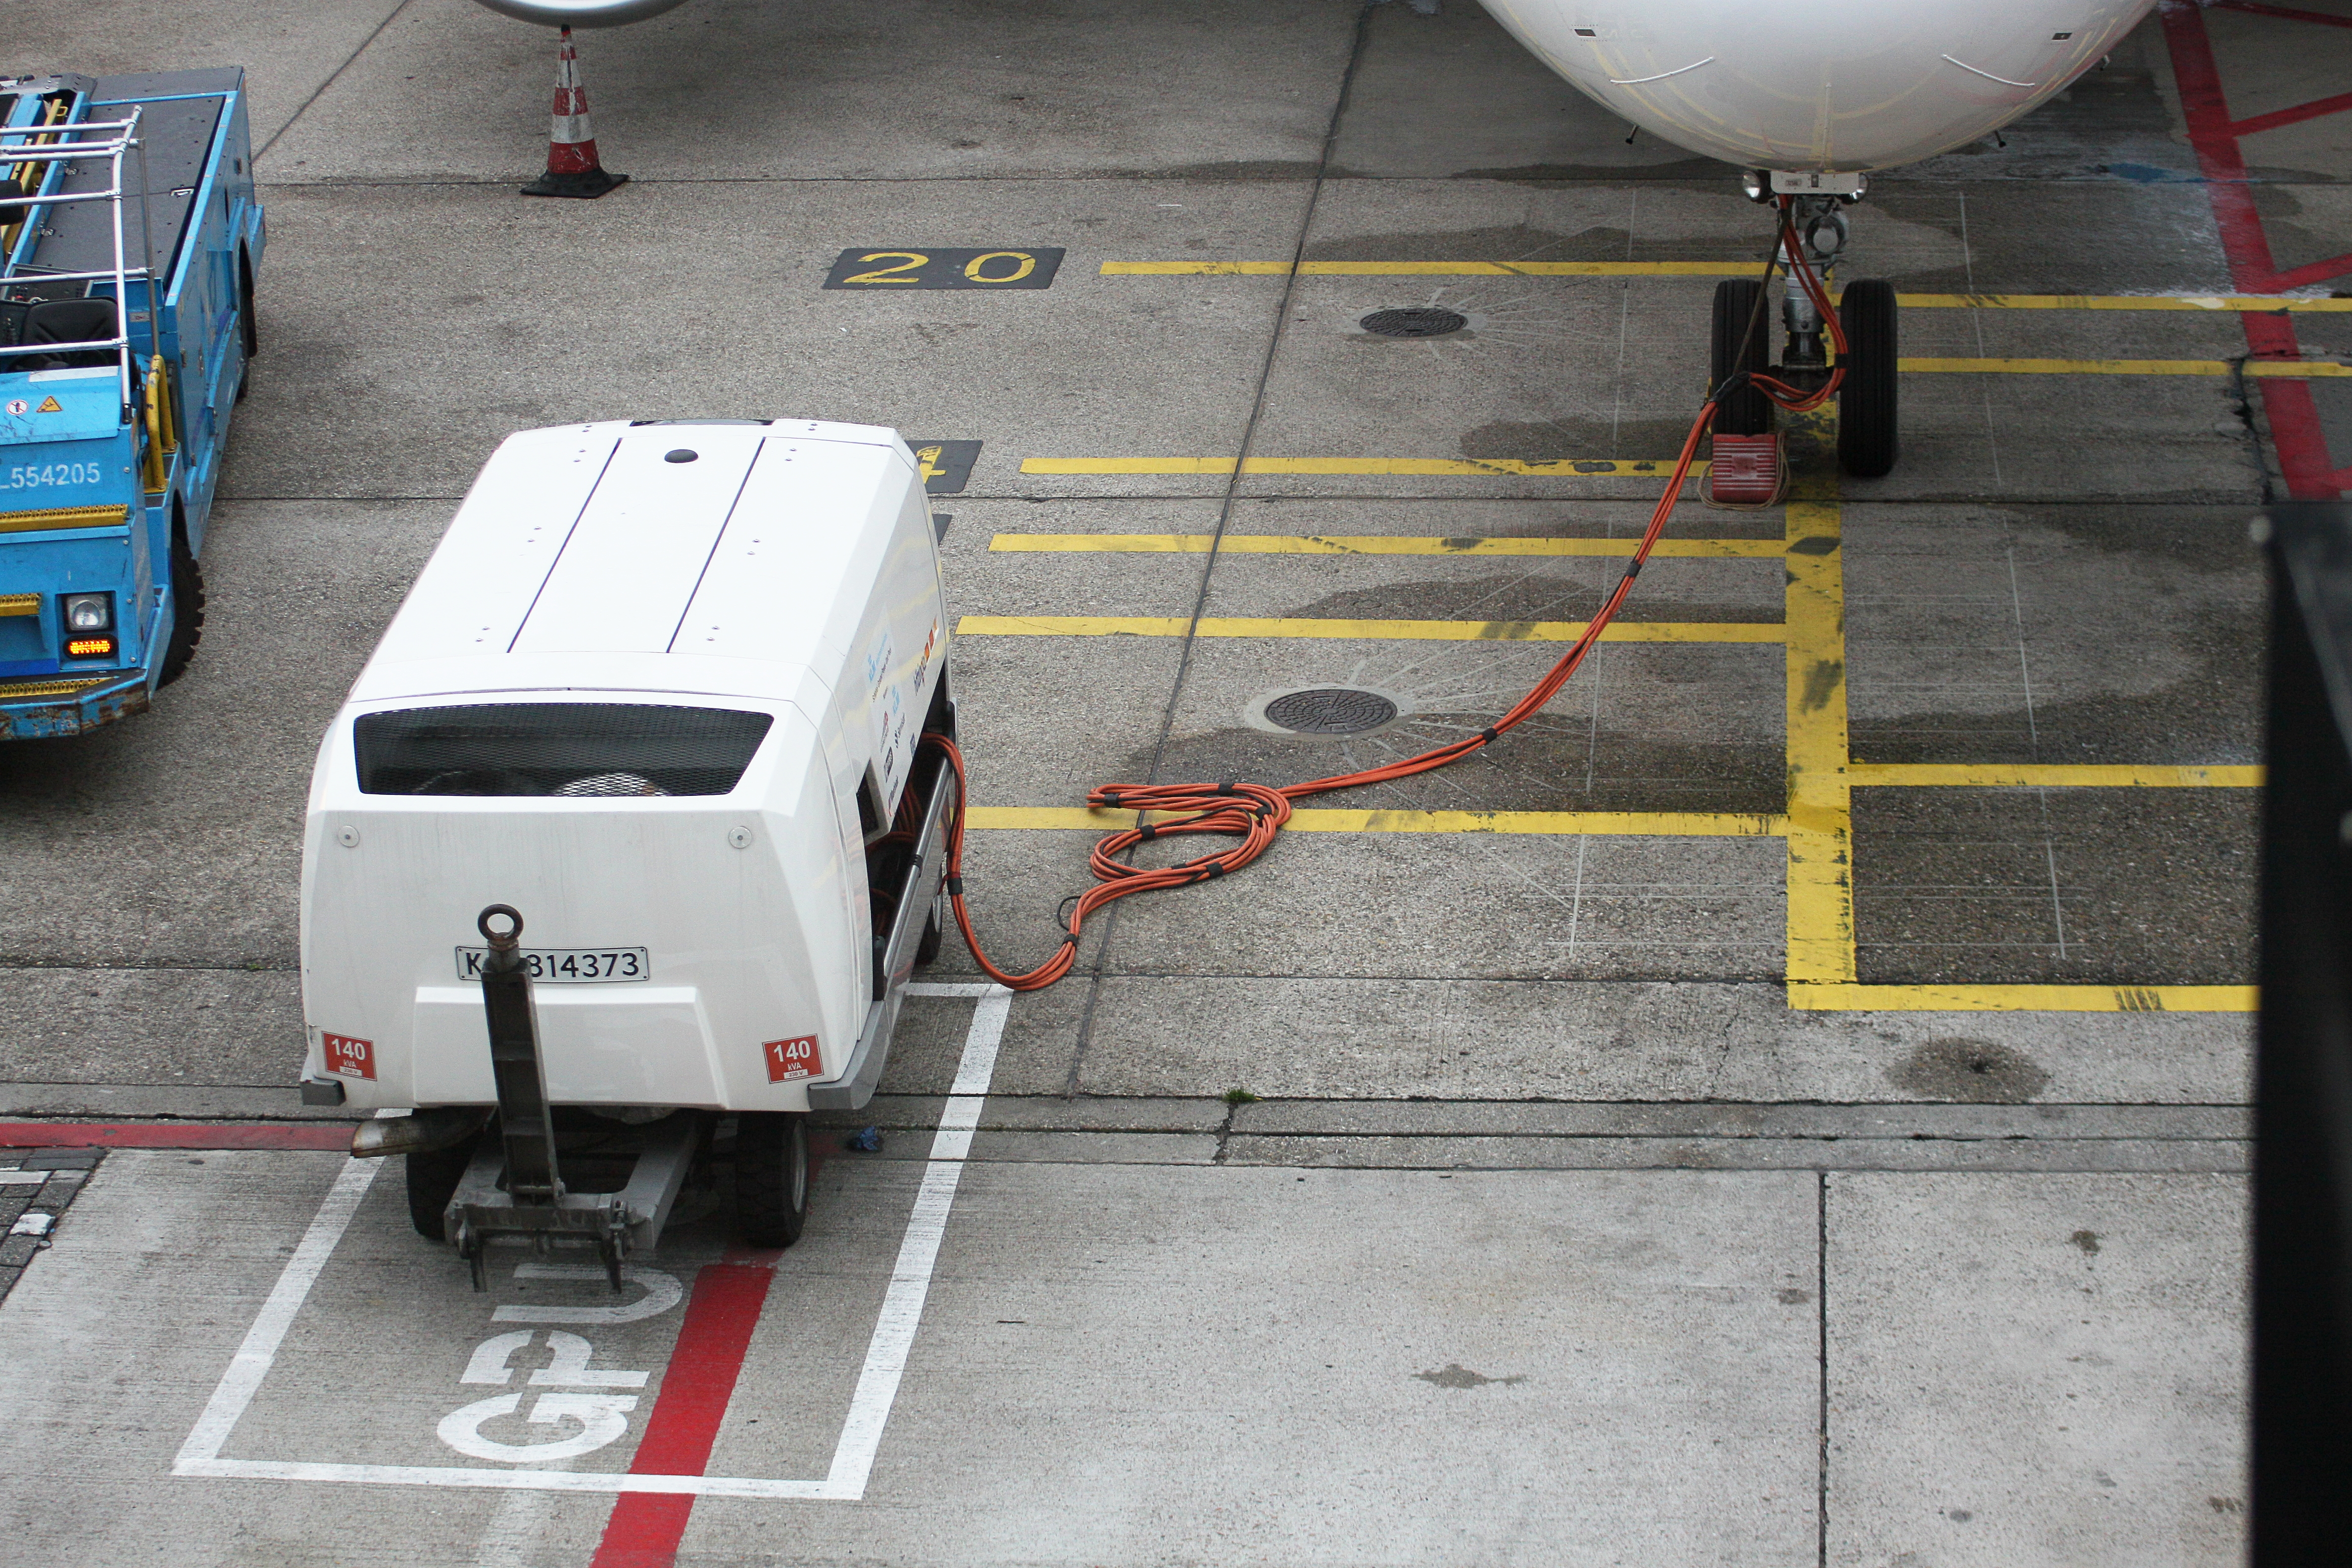 Airport Ground Power Units : Datei amsterdam airport schiphol pd g wikipedia